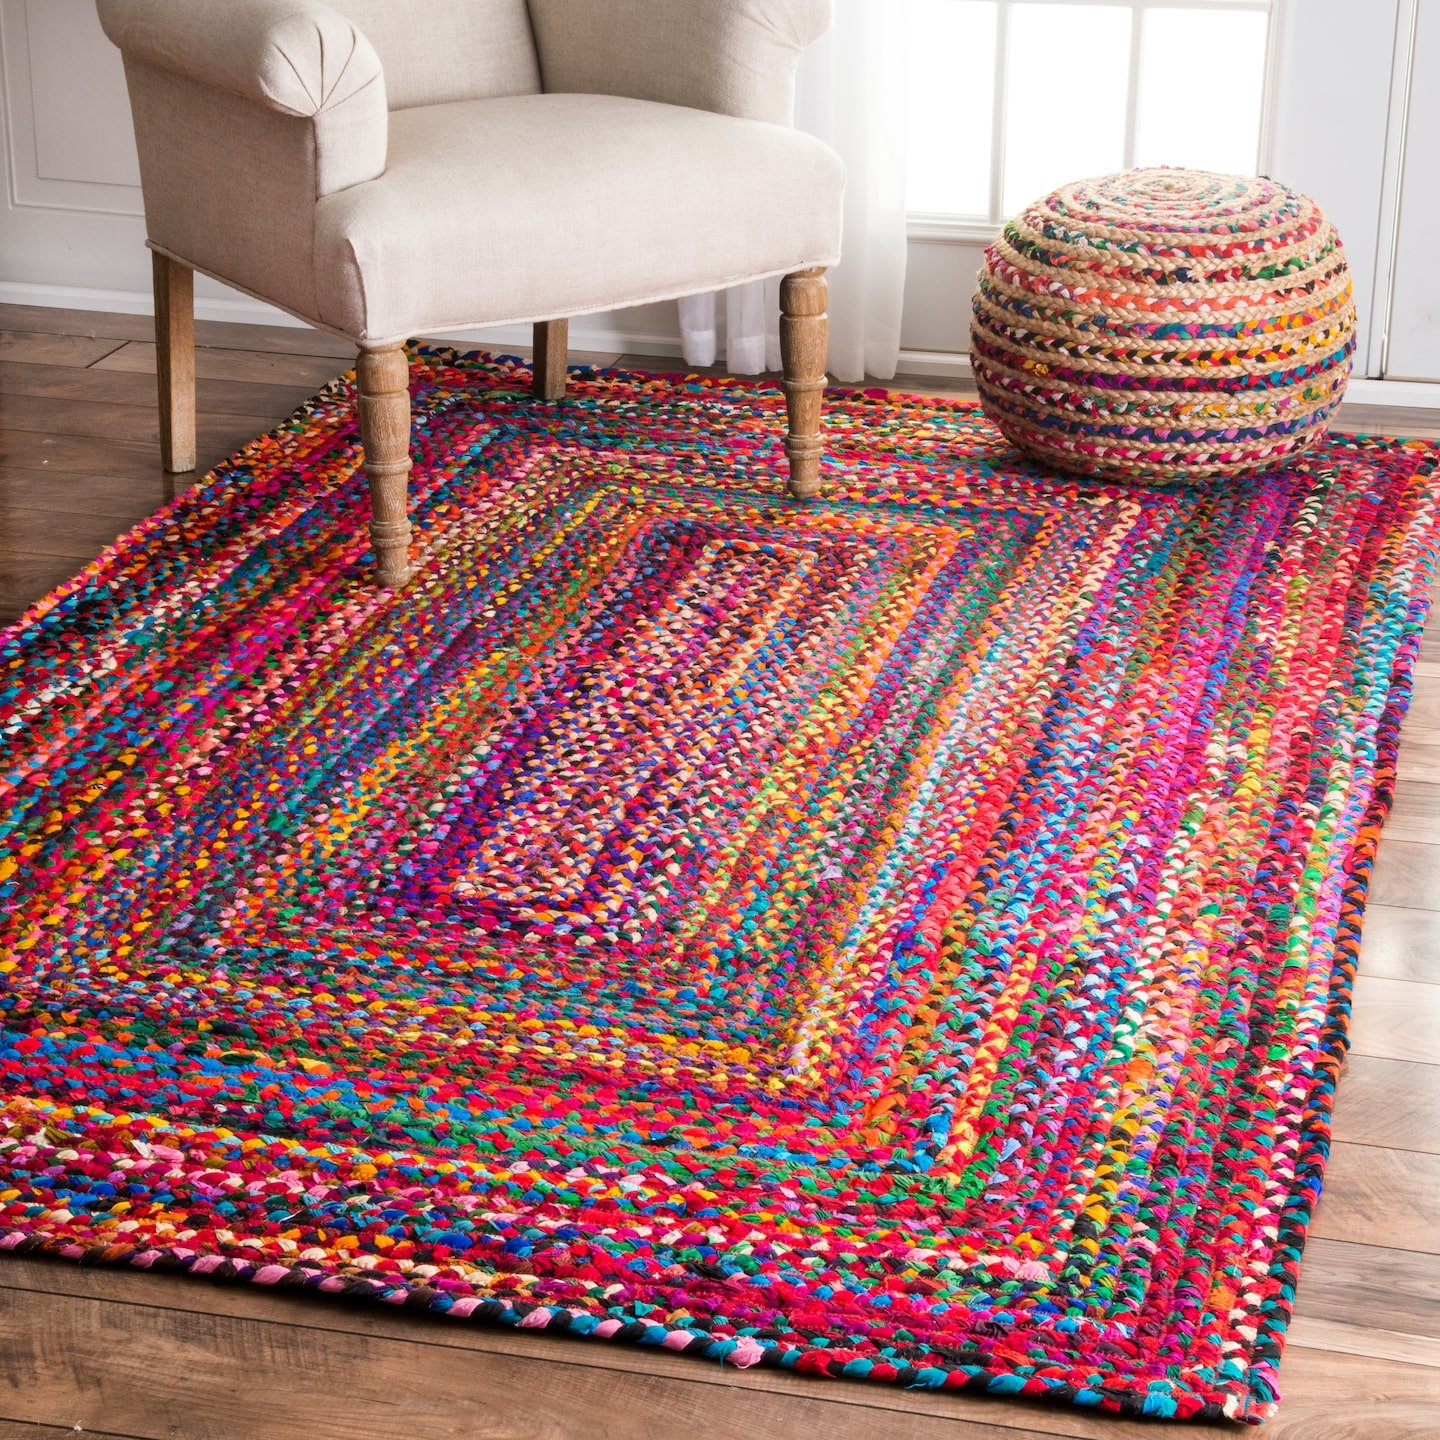 nuLOOM Accent Rugs, 5' x 8', Multicolor